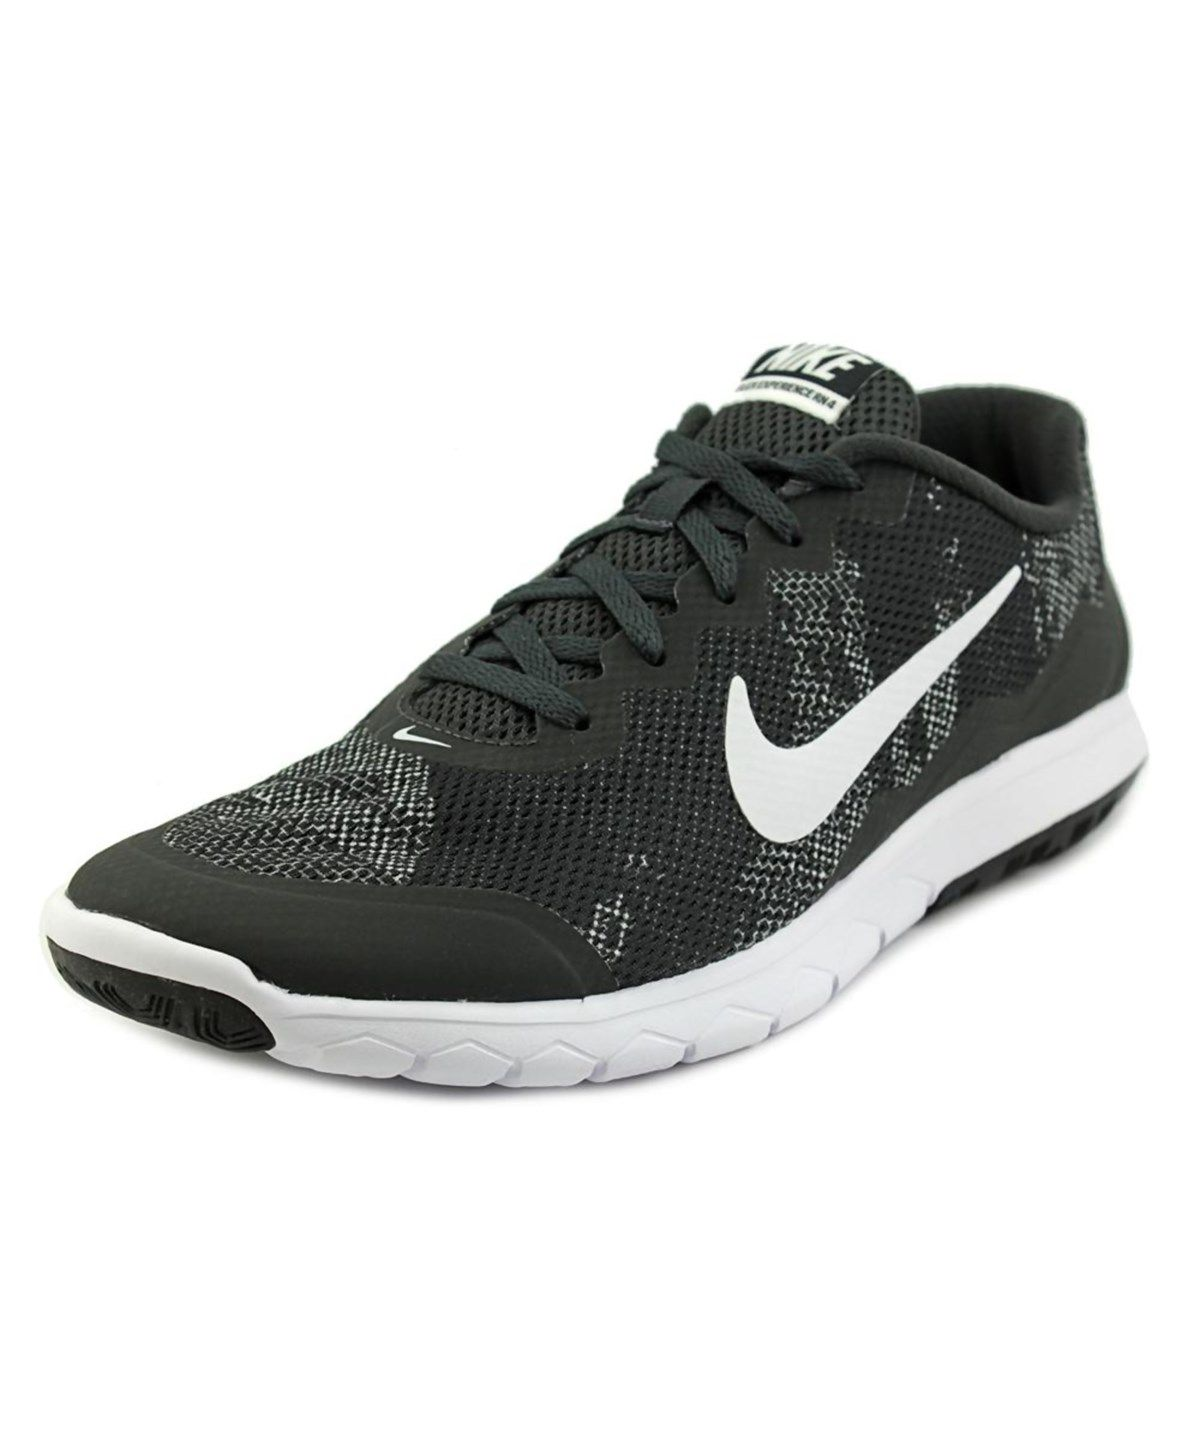 a25666d1263ed NIKE Nike Flex Experience Rn 4 Prem Round Toe Synthetic Sneakers .  nike   shoes  sneakers